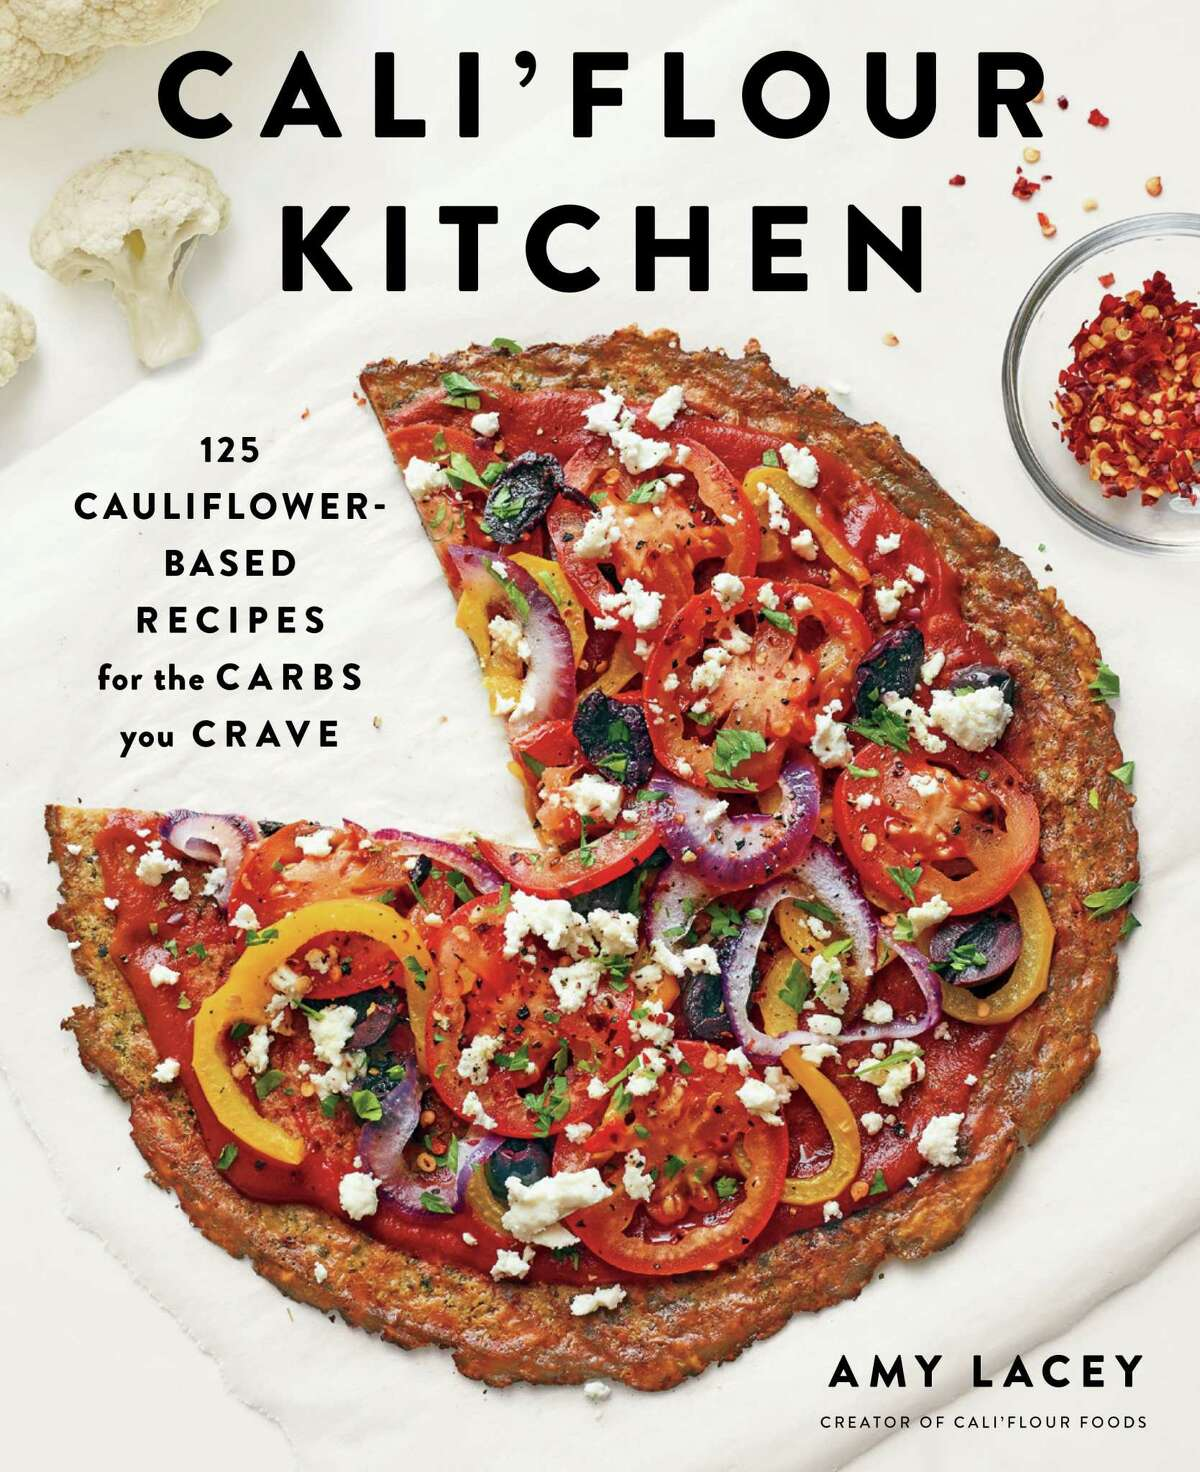 Cali'flour Kitchen by Amy Lacey, published by Abrams Books © 2019